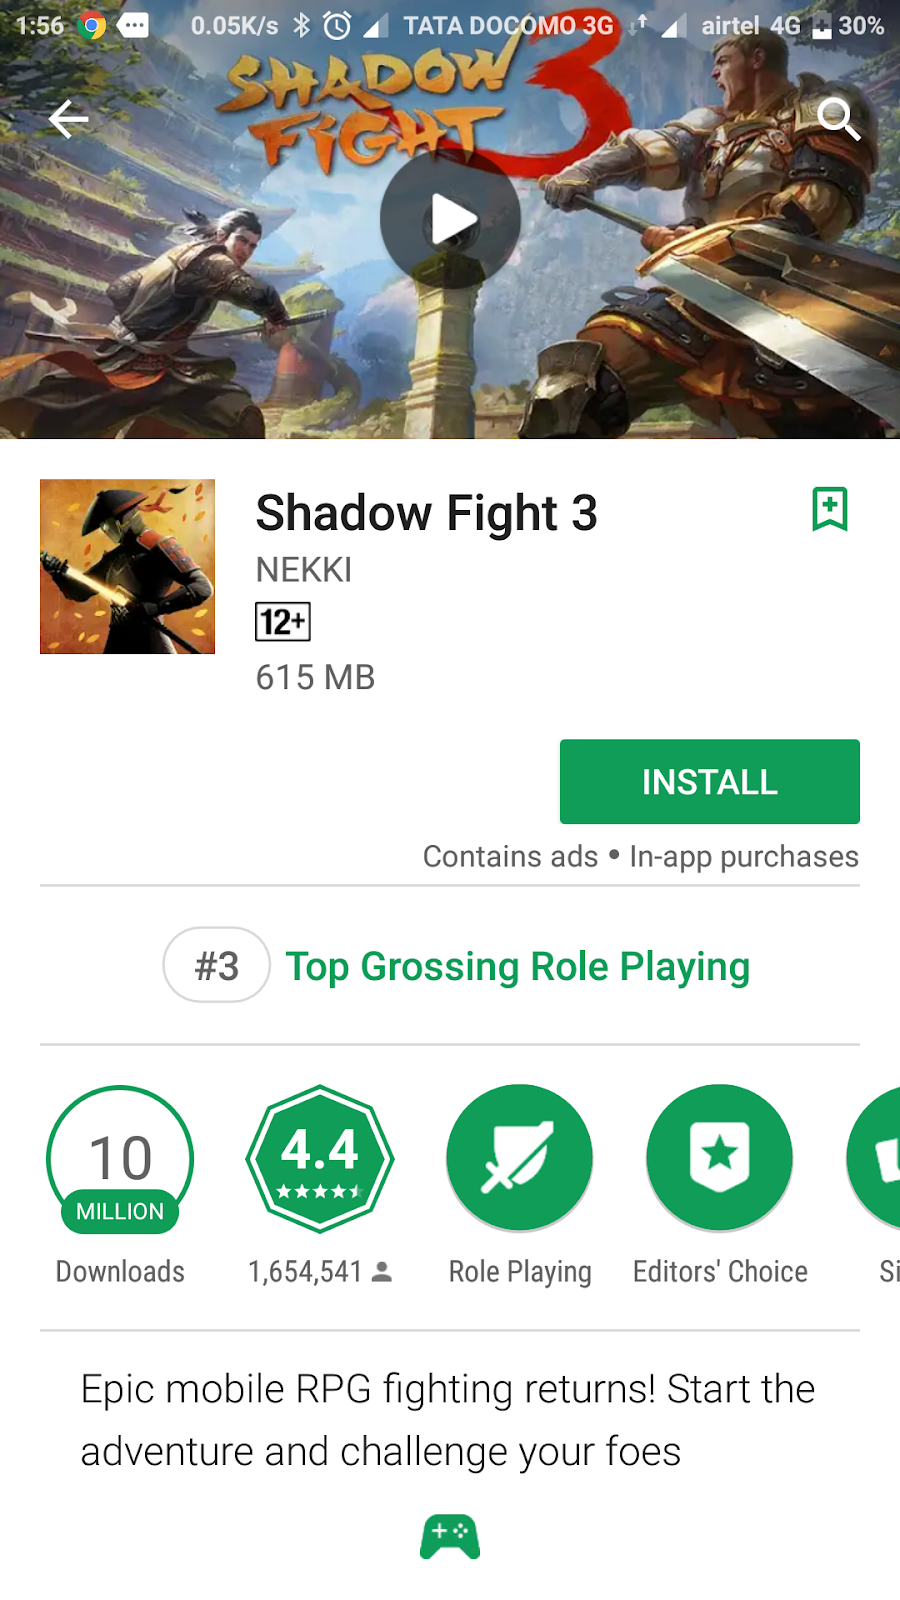 150MB] Shadow fight-3 with MOD APK + highly compressed data